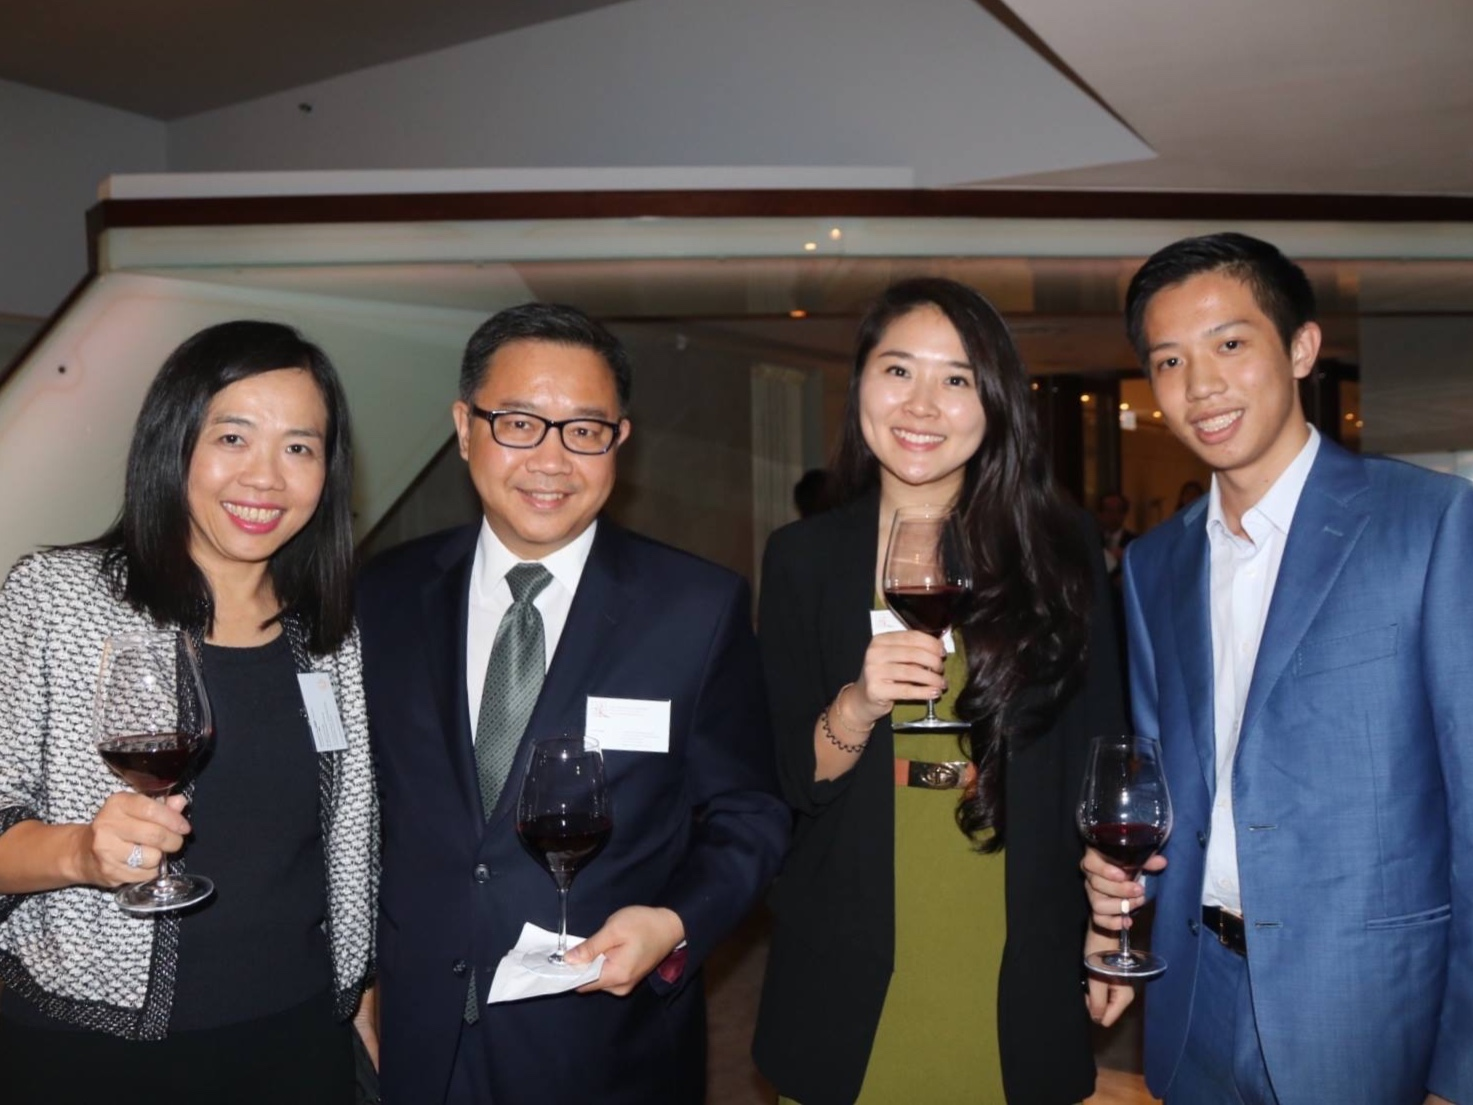 Director Jacqueline Lam (1st left) and Founder & President Joseph Wan (1st right) with Paul Tchen, Managing Director and CEO of Sir Horace Kadoorie Youth Development Foundation SHKYDF (2nd left), and Penny Peng, Corporate and Business  Affairs Manager, SHKYDF